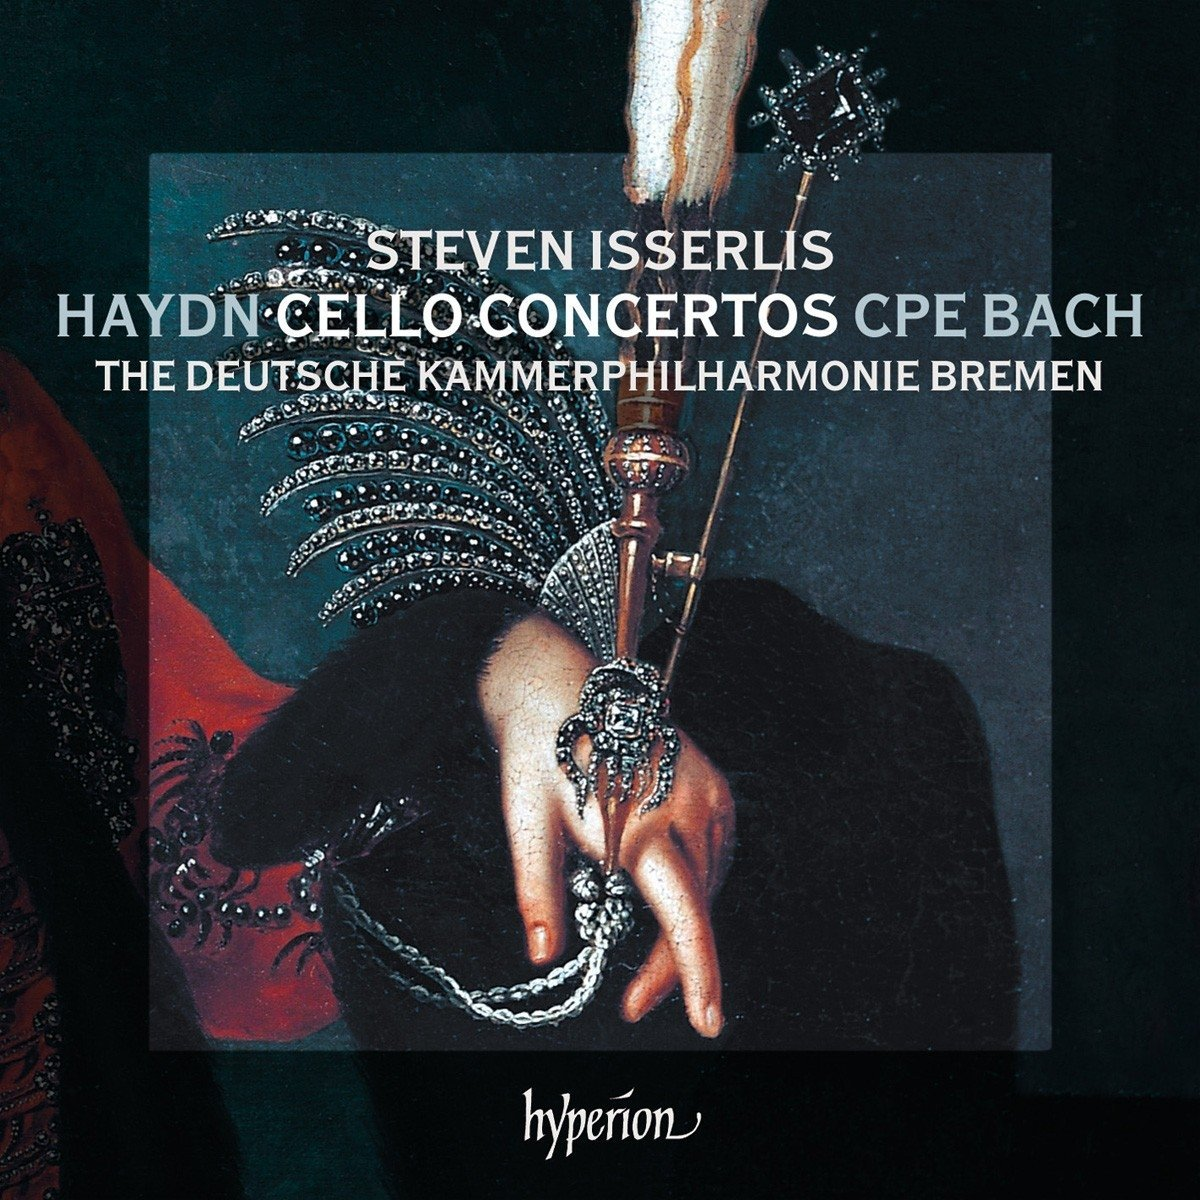 Haydn & CPE Bach: Cellos Concertos - Steven Isserl